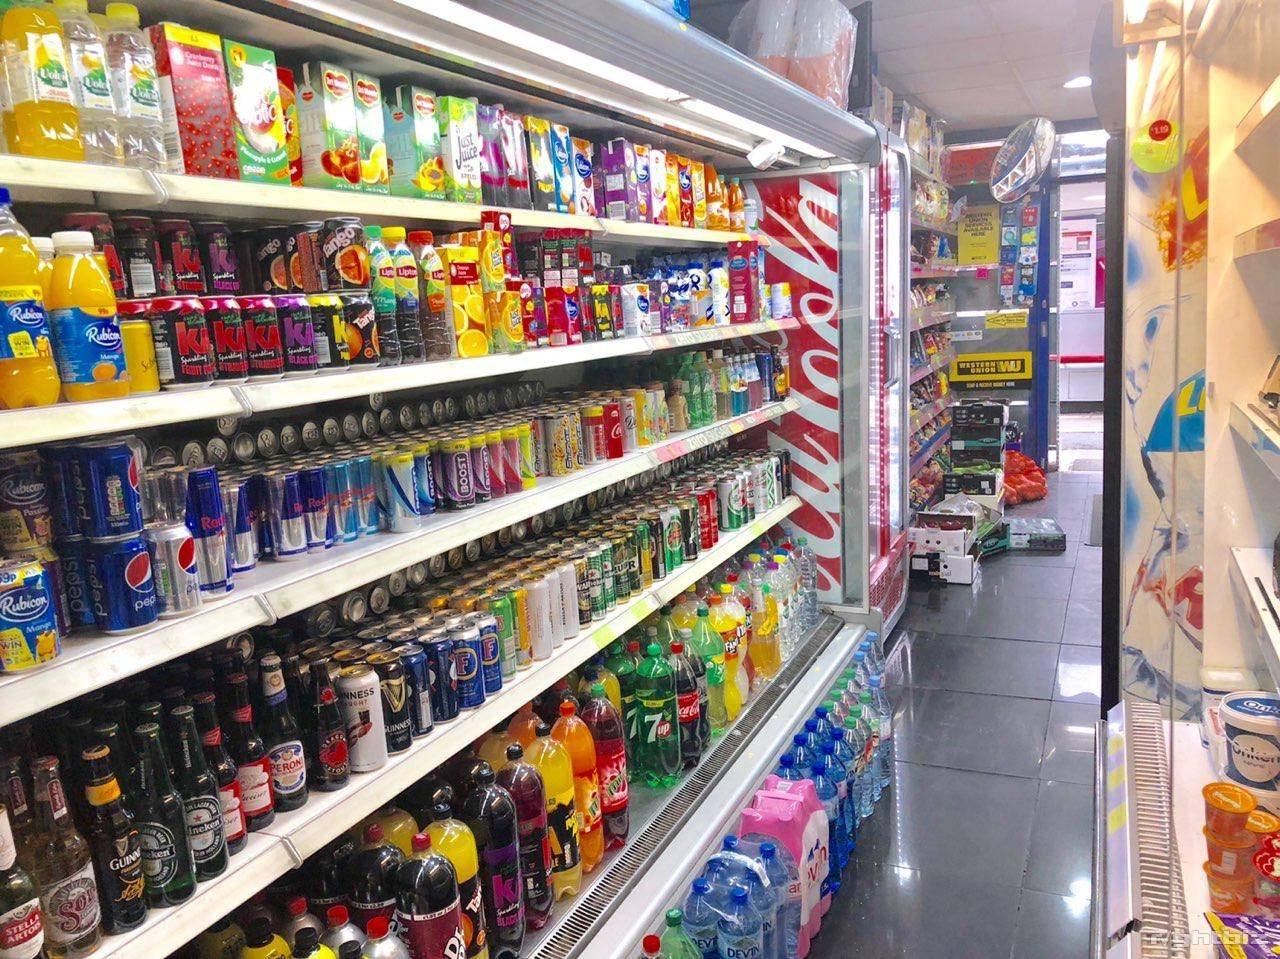 Off License & Grocery for Sale in Goodmayes Ilford IG3 9UN - Image 3